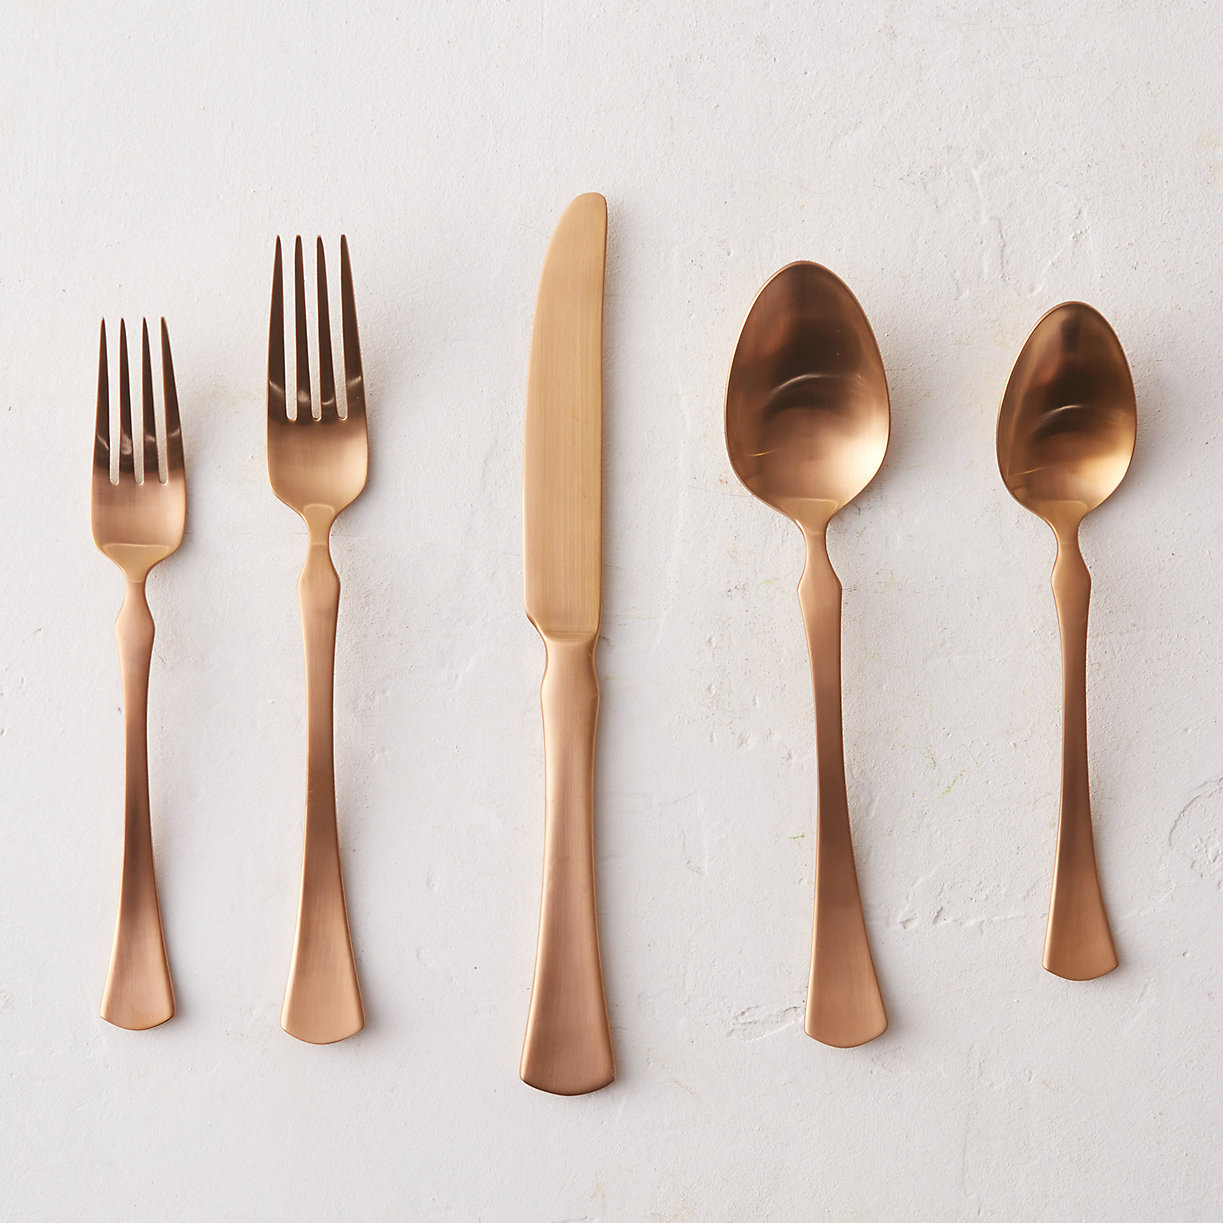 Copper silverware